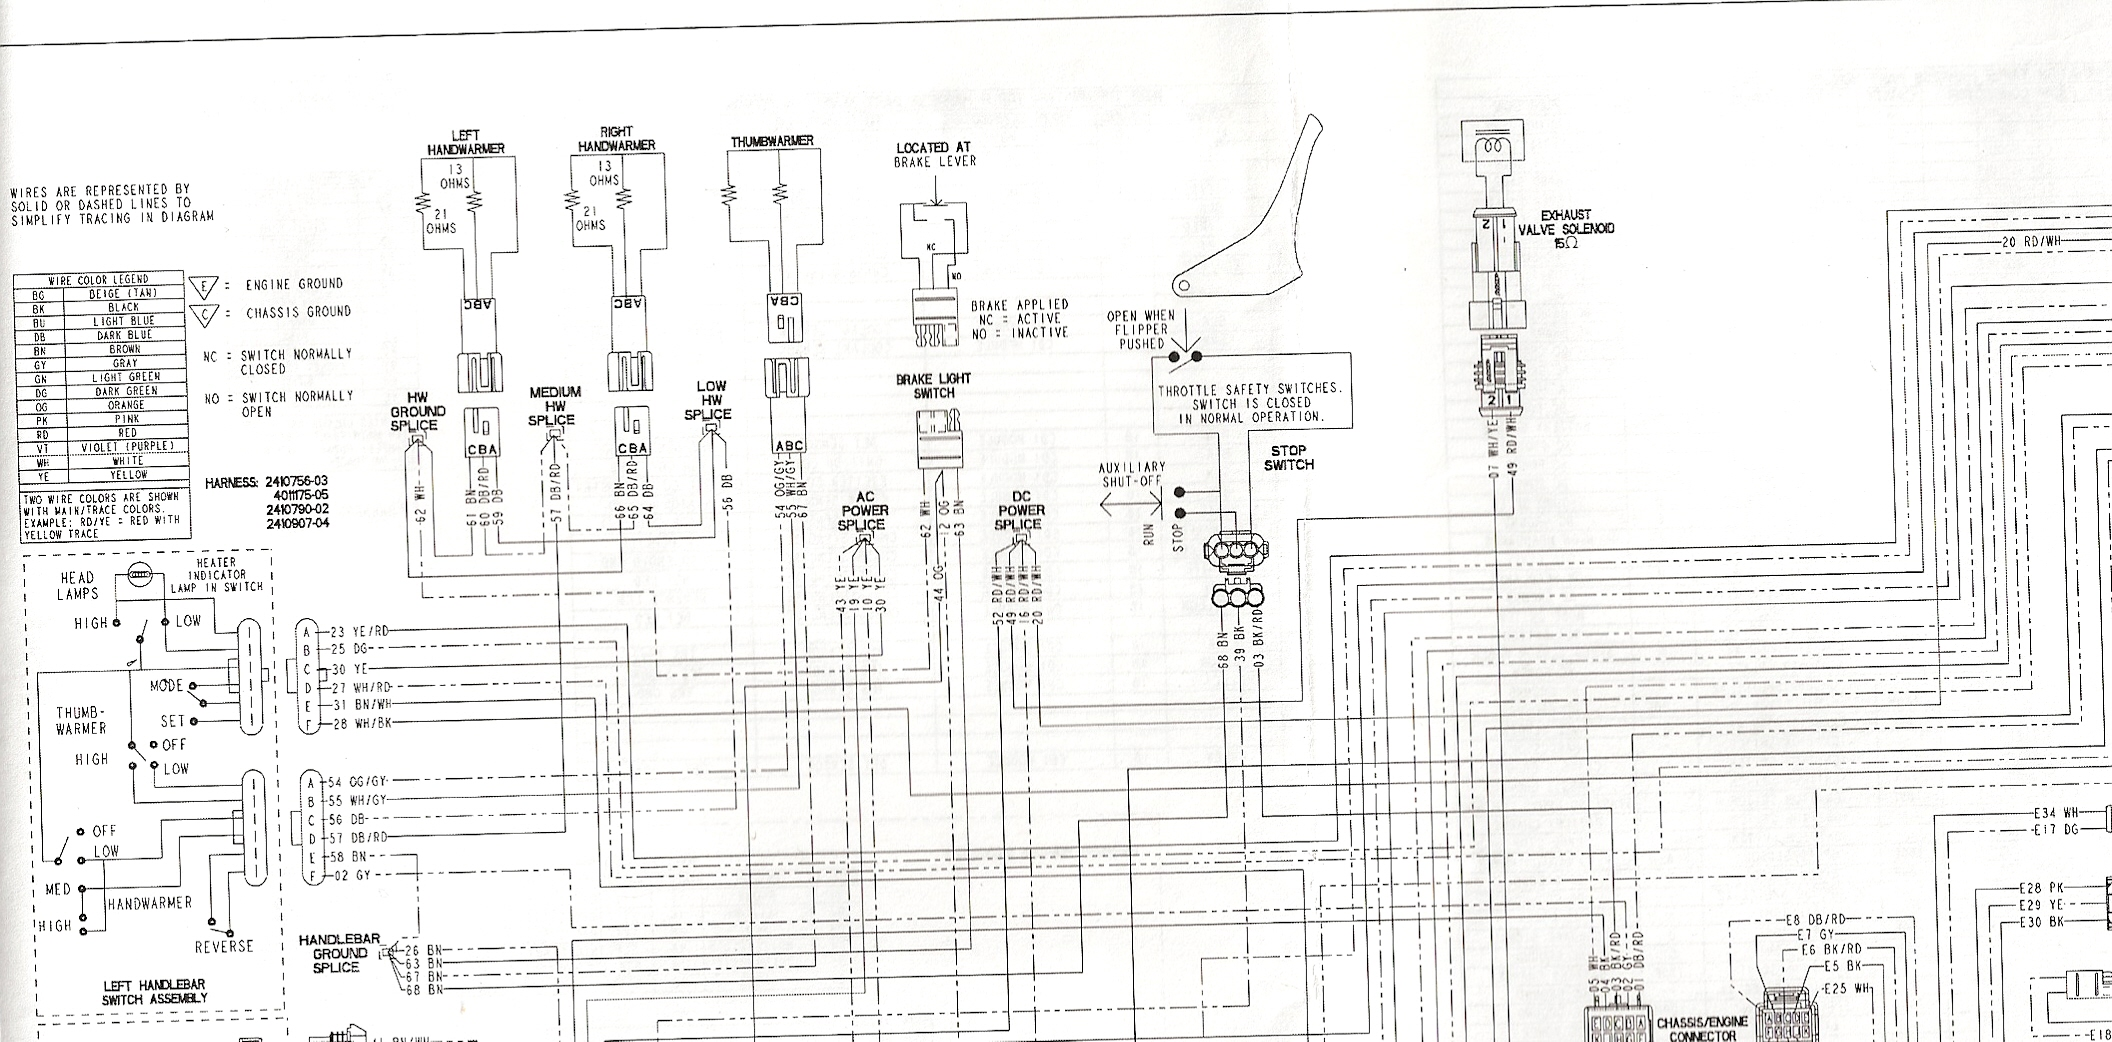 polaris rzr wiring diagram kg 0295  diagrams polaris wiring tm 2004 schematic wiring polaris rzr 1000 wiring diagram kg 0295  diagrams polaris wiring tm